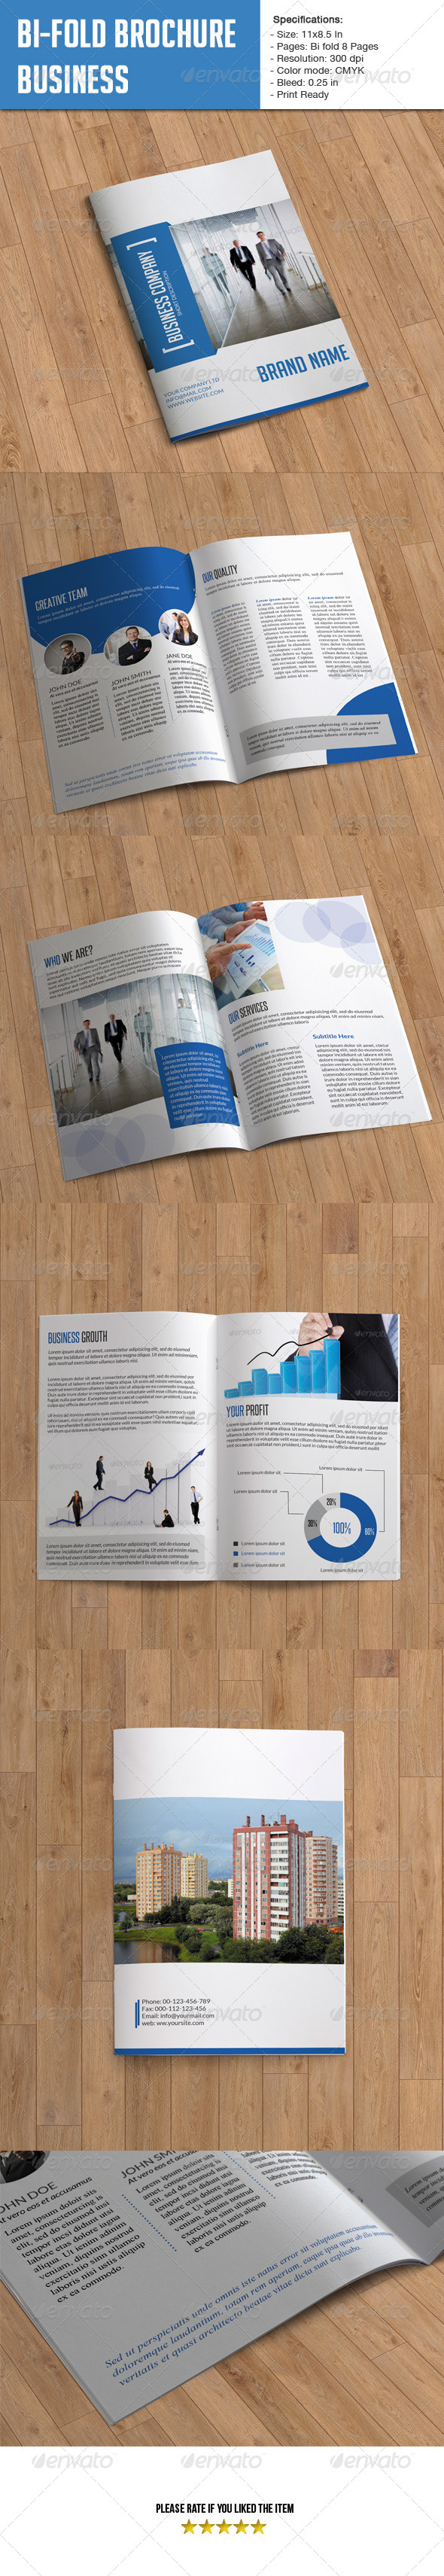 Bifold Brochure for Business- 8 Pages - Corporate Brochures